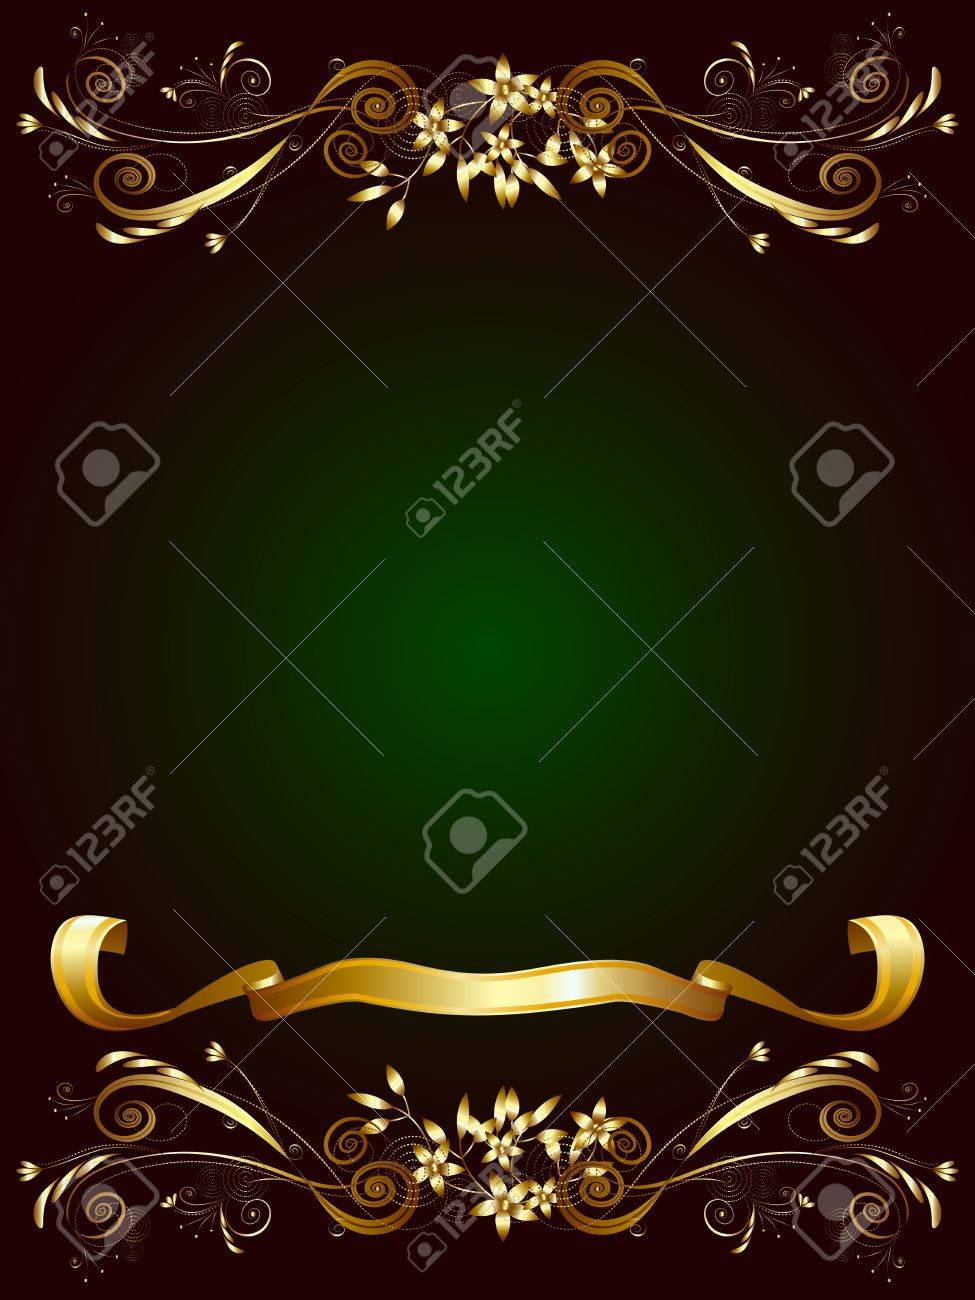 Decorative frame for text on a dark green background with gold floral ornaments and ribbon Stock Vector - 12759722